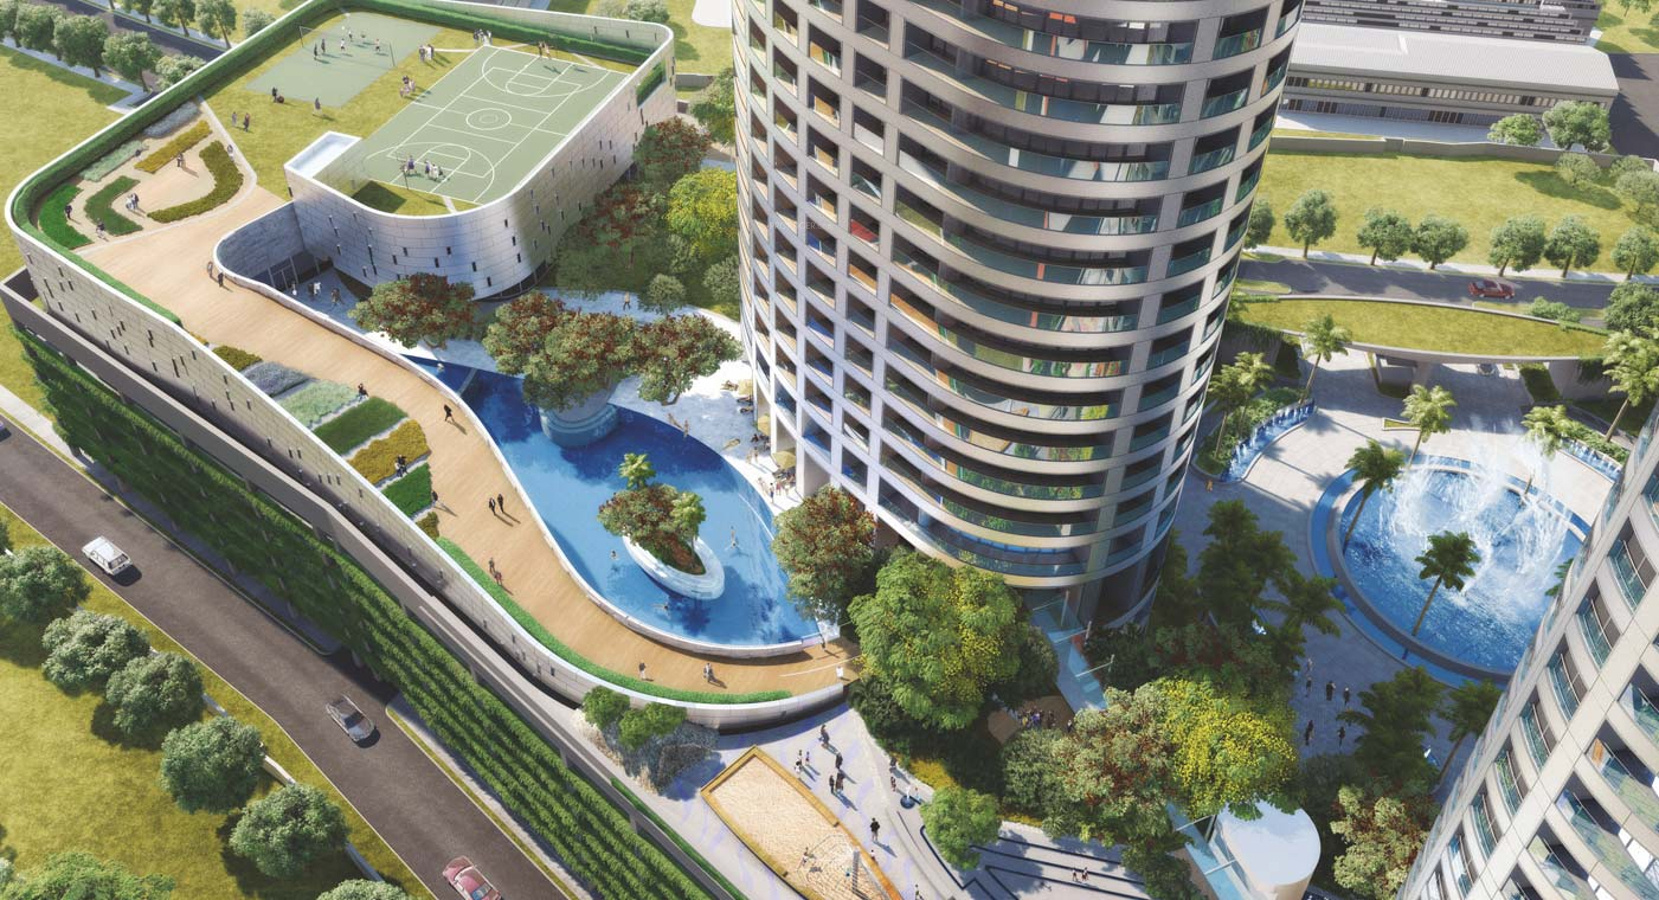 Main elevation image 3 of lodha group world crest unit - Swimming pool construction cost in hyderabad ...